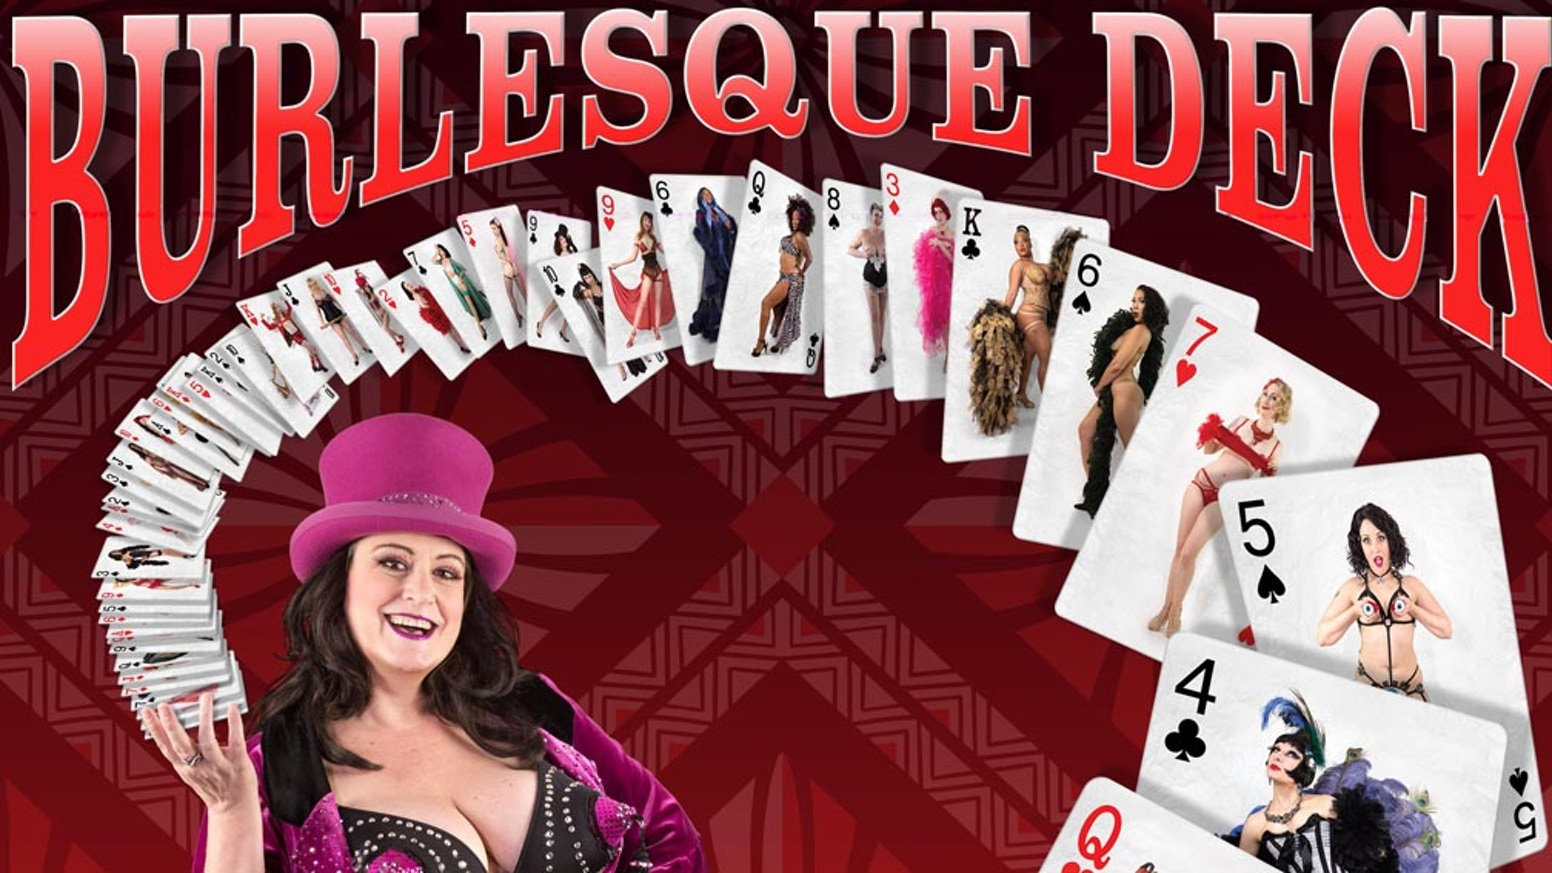 The Burlesque Deck is a unique poker sized deck of cards for the pin-up / burlesque collector, magician, & lover of art cards. Decks will available soon our website!